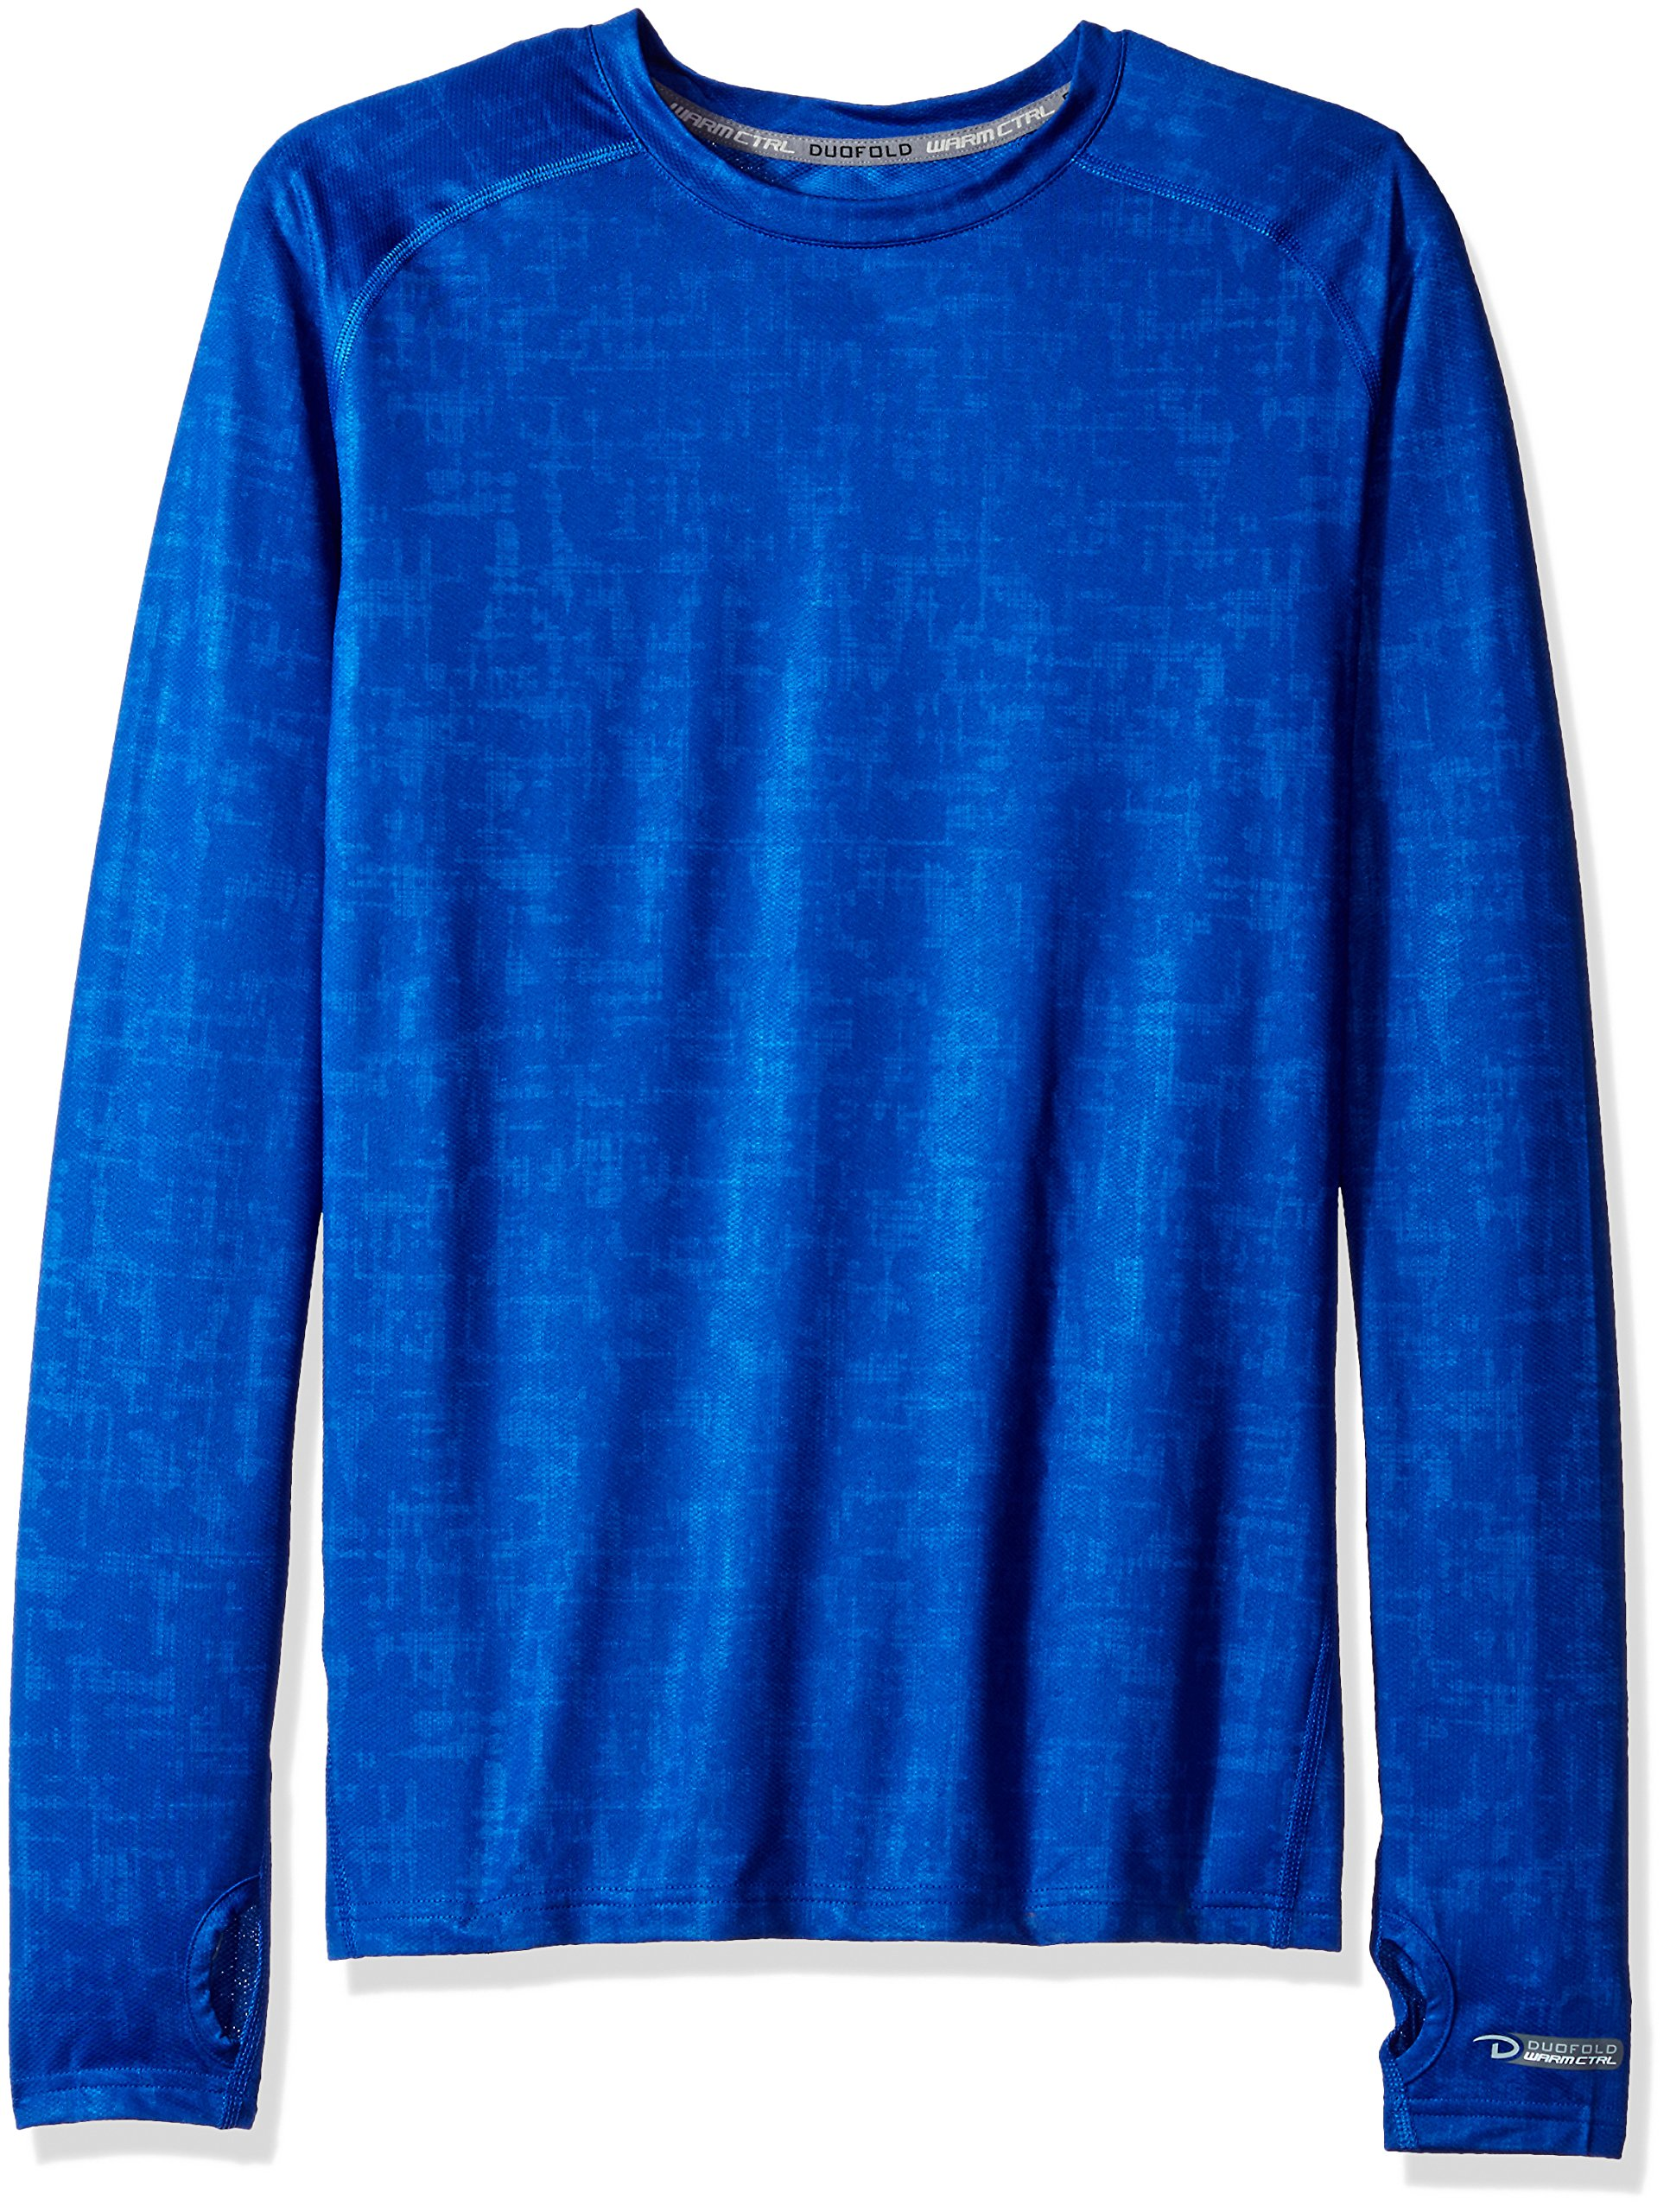 Duofold Men's Light Weight Thermatrix Performance Thermal Shirt, Surf the Web Glitch Texture, S by Duofold